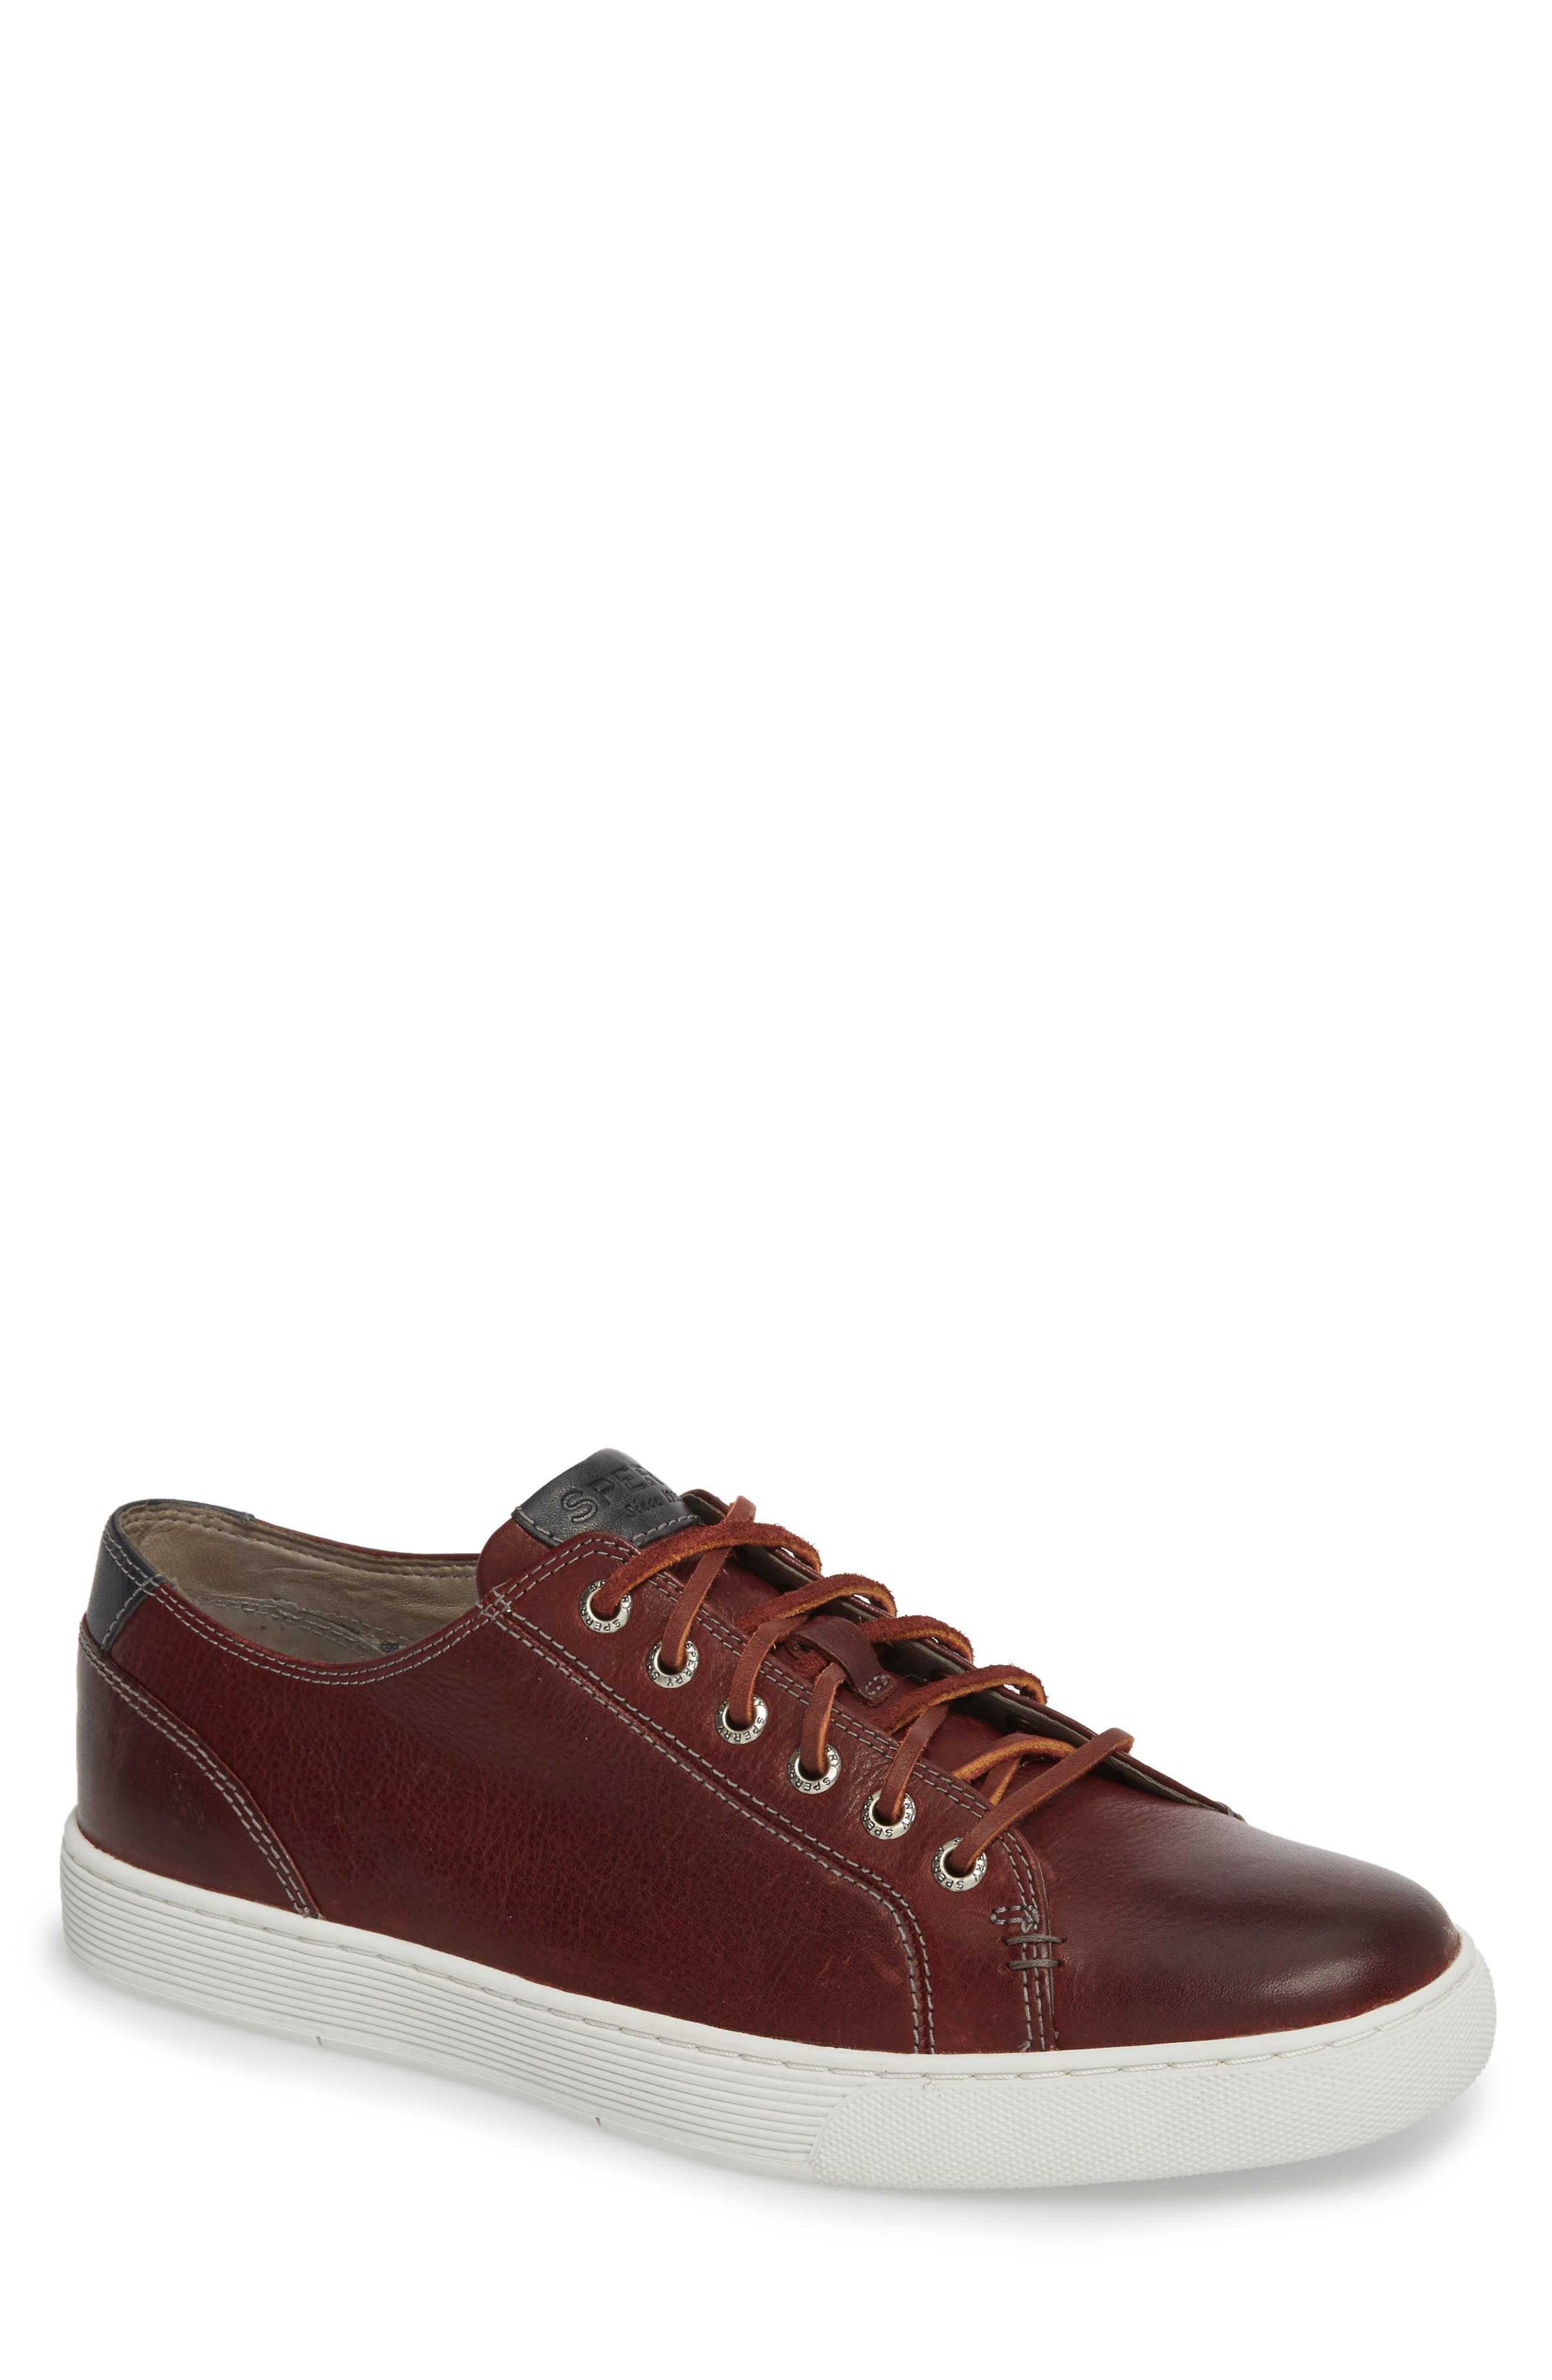 Gold Cup Sport Sneaker,                         Main,                         color,